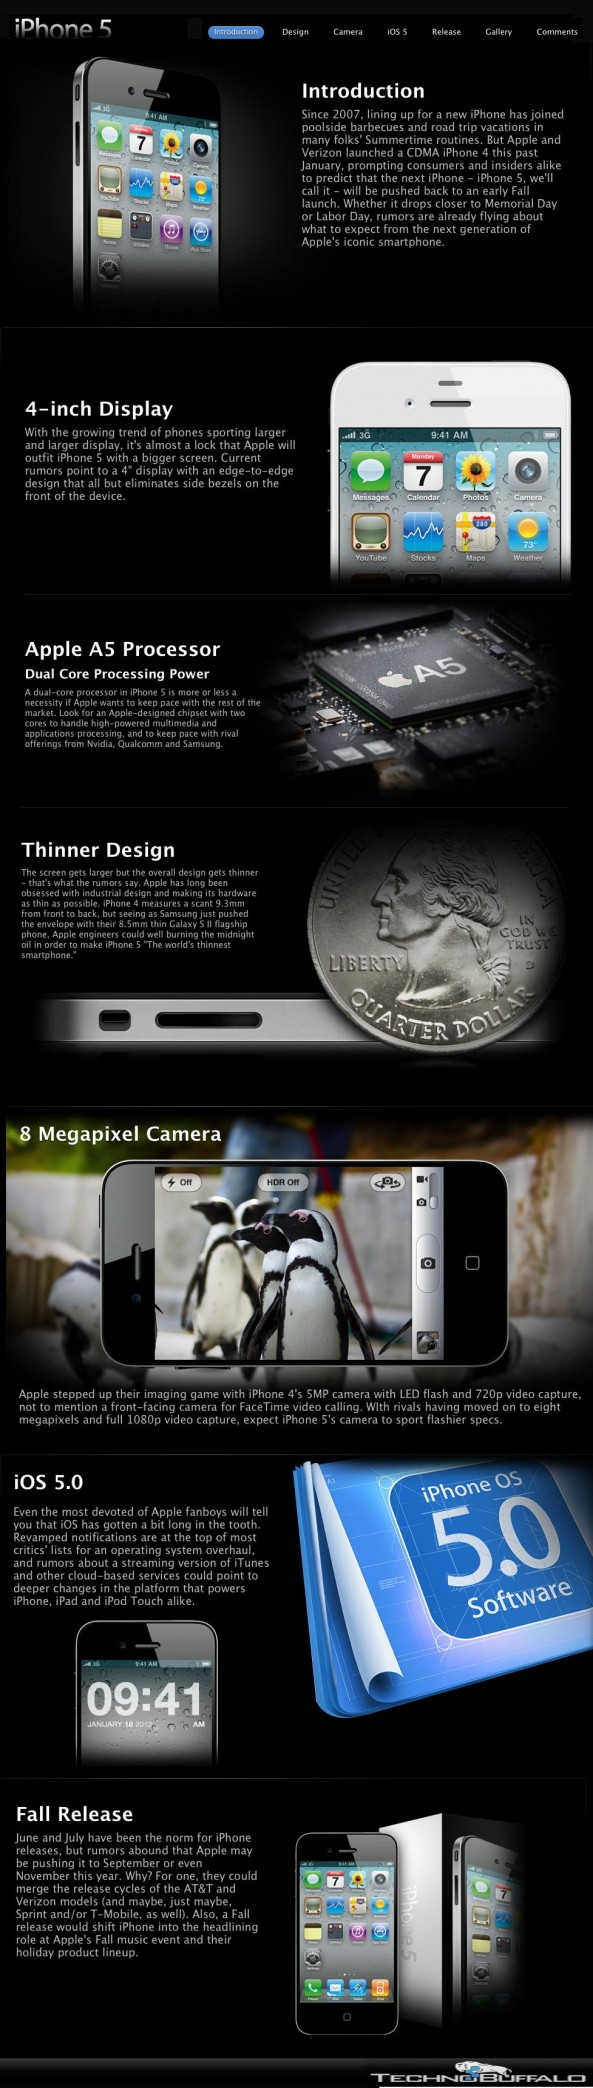 The iPhone 5 Rumour Roundup [INFOGRAPHIC]